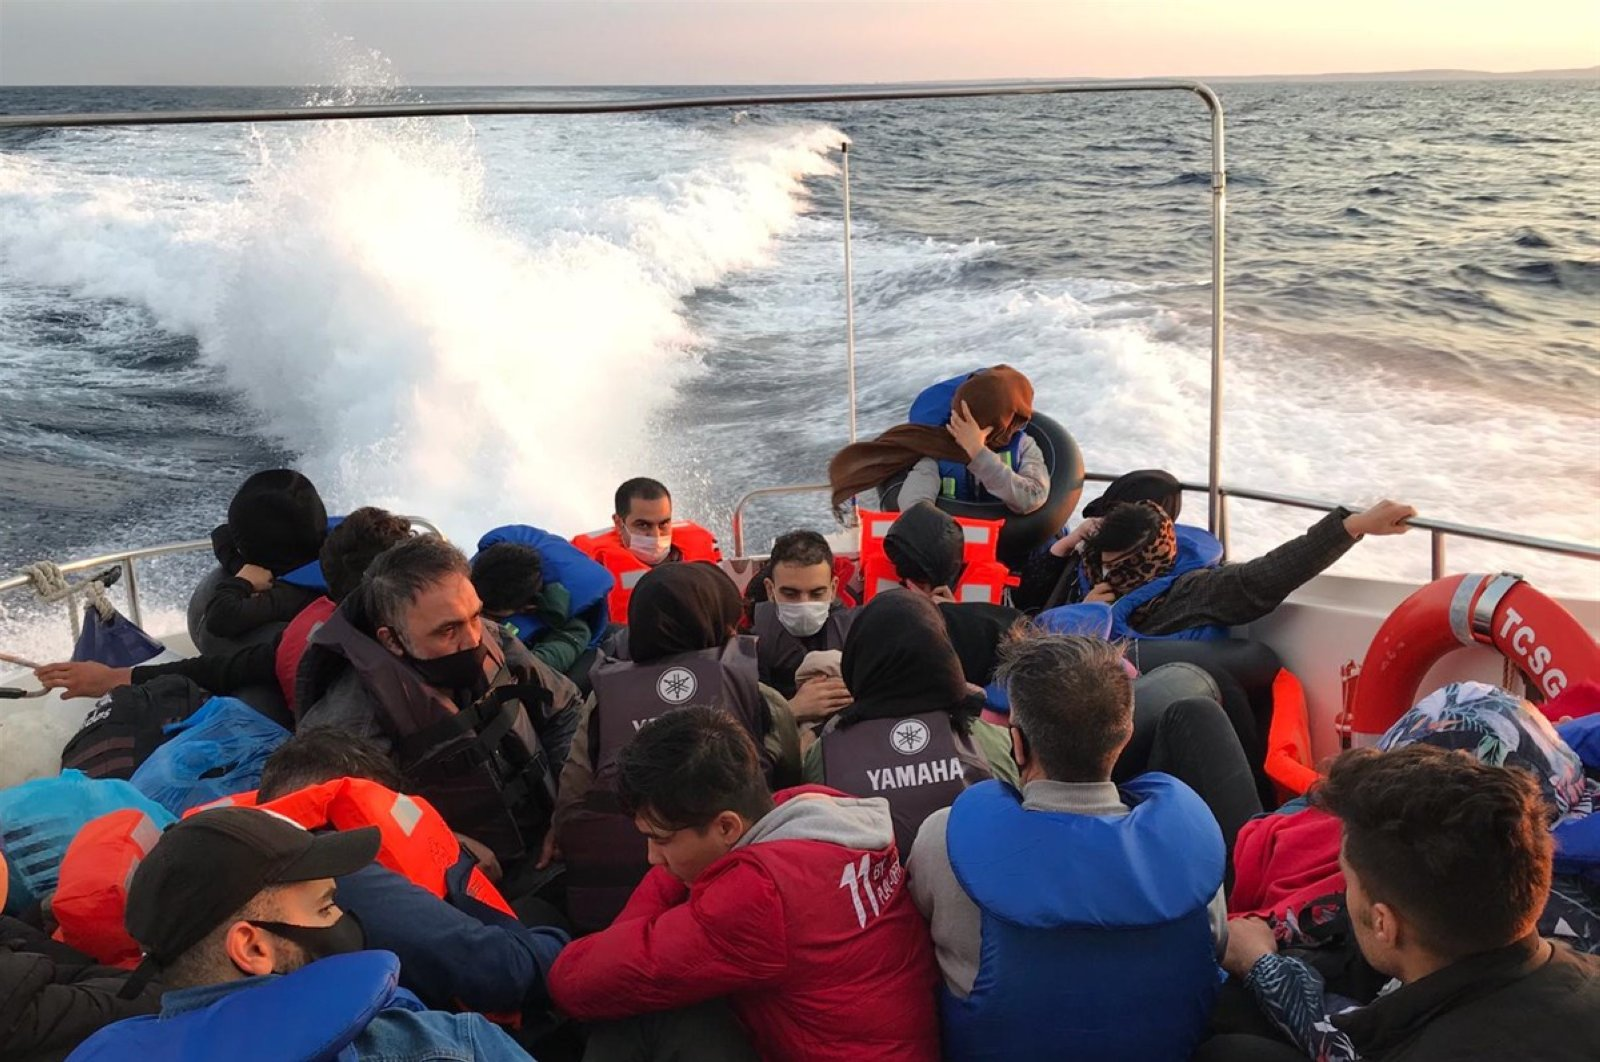 Turkish Coast Guard units rescue 125 migrants and refugees in three different operations conducted off the Ayvacık and Bozcaada districts of northwestern Çanakkale province, Turkey, June 15, 2020. (AA Photo)